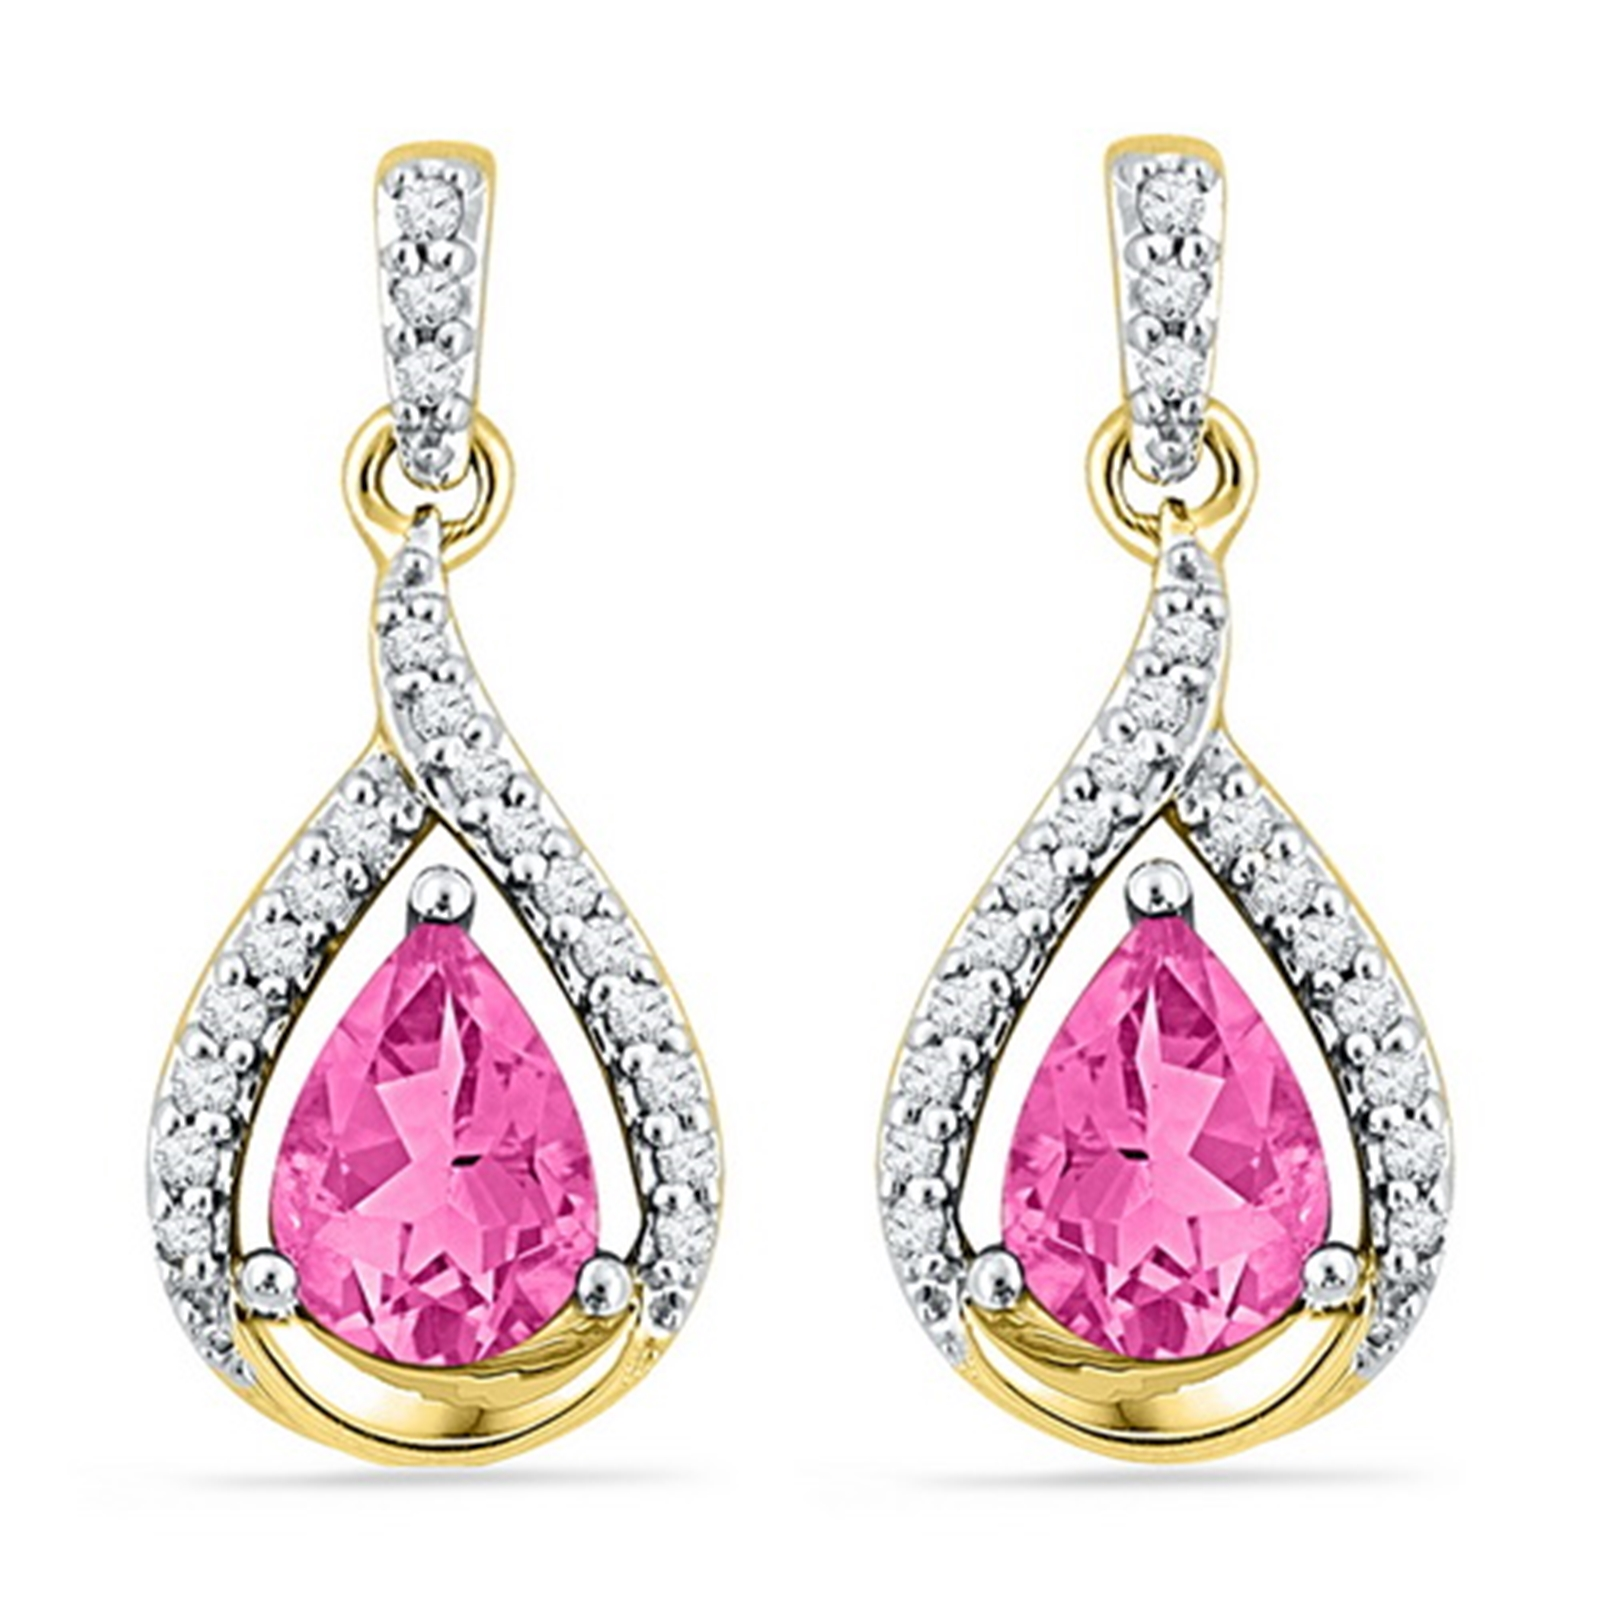 Lab-created Pink Sapphire Earrings with Genuine Diamond Accents 10k Yellow Gold by GND